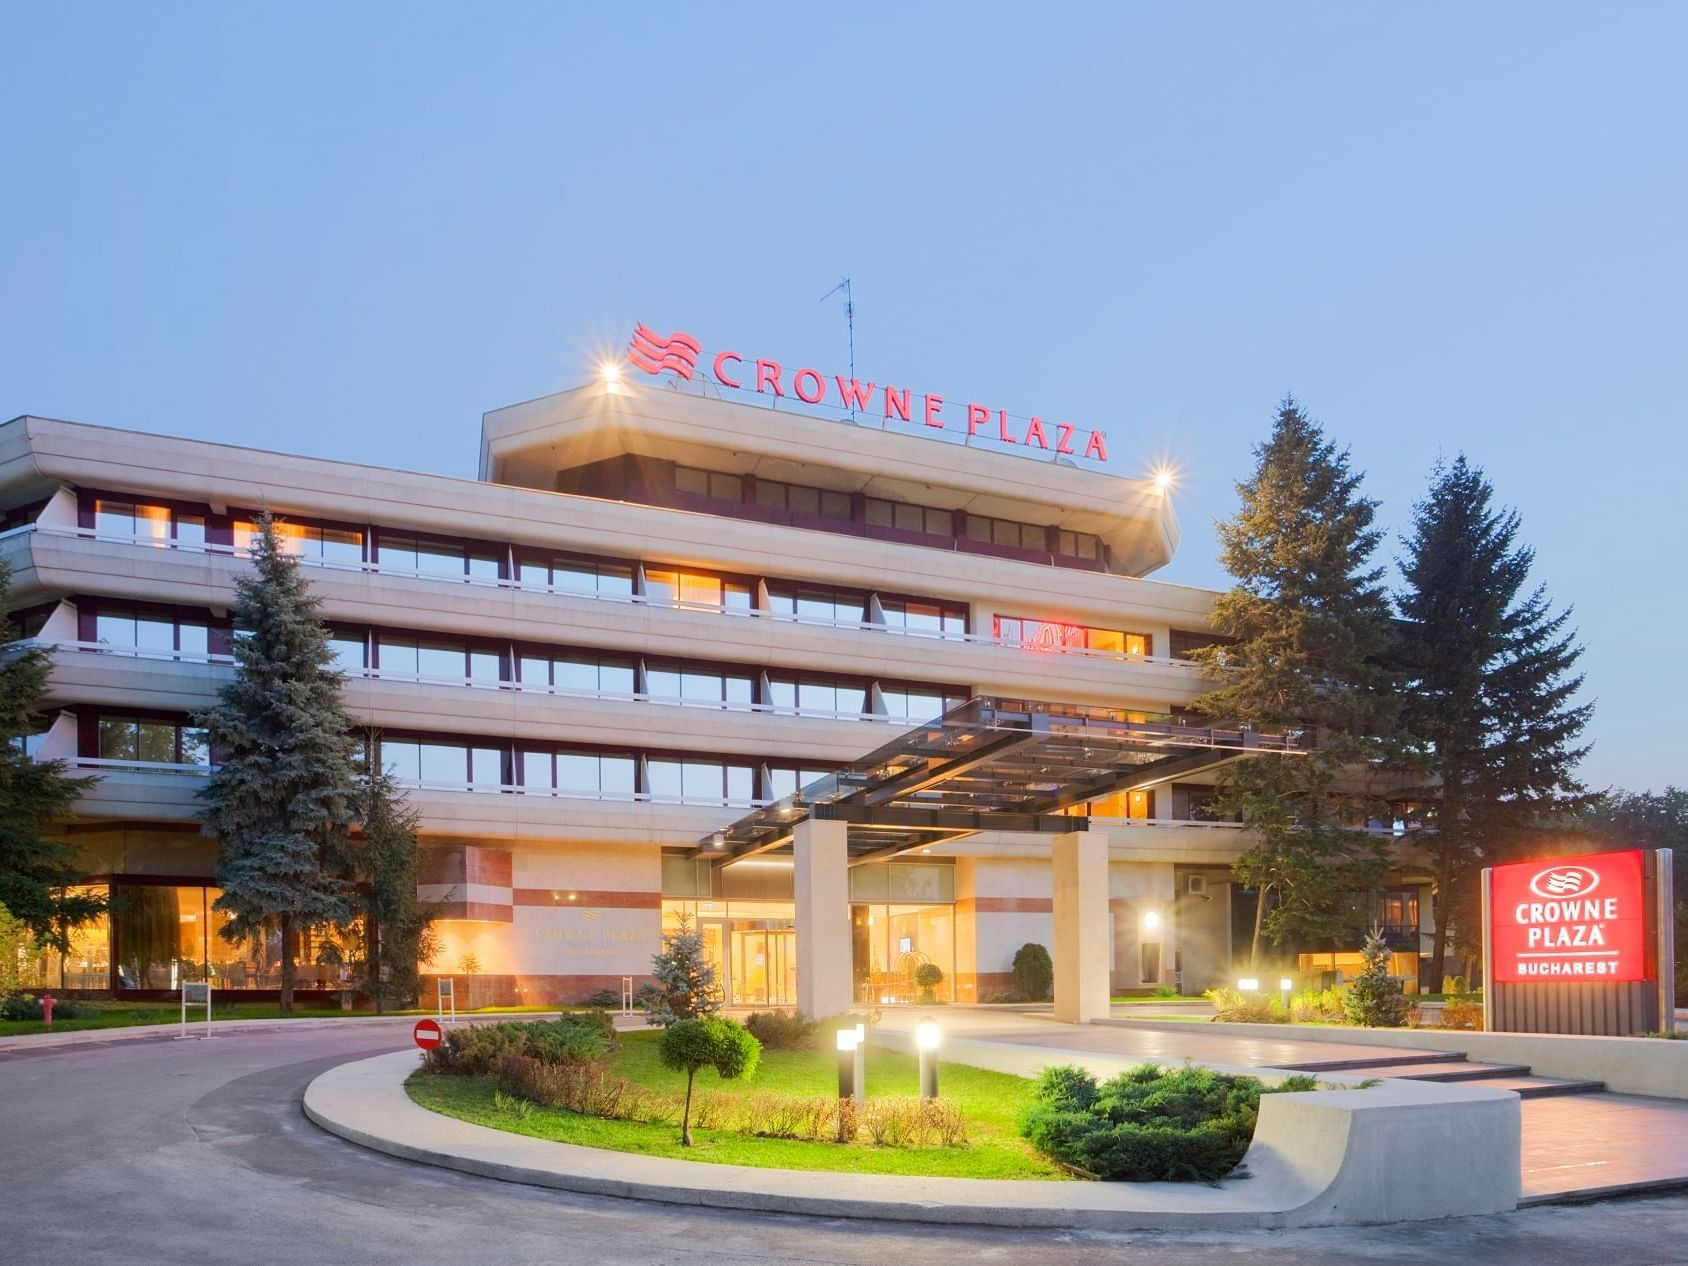 An Exterior view of the Hotel at Crowne Plaza Bucharest